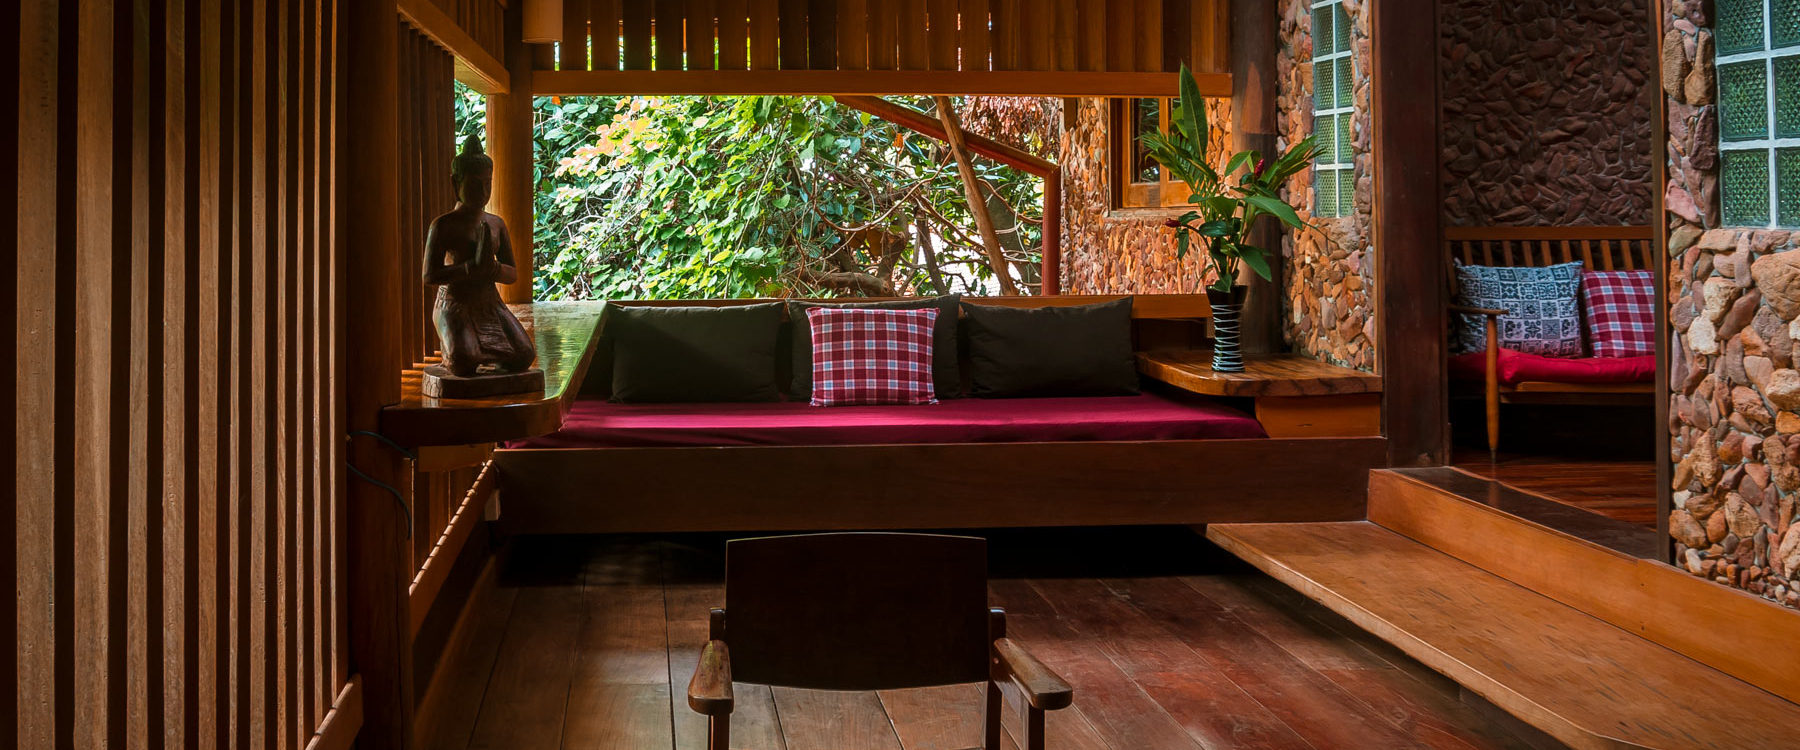 Private terrace to the garden in a wooden cottage with lounge area made of natural stones and wooden parquet in Veranda Natural Resort, Kep - Cambodia.